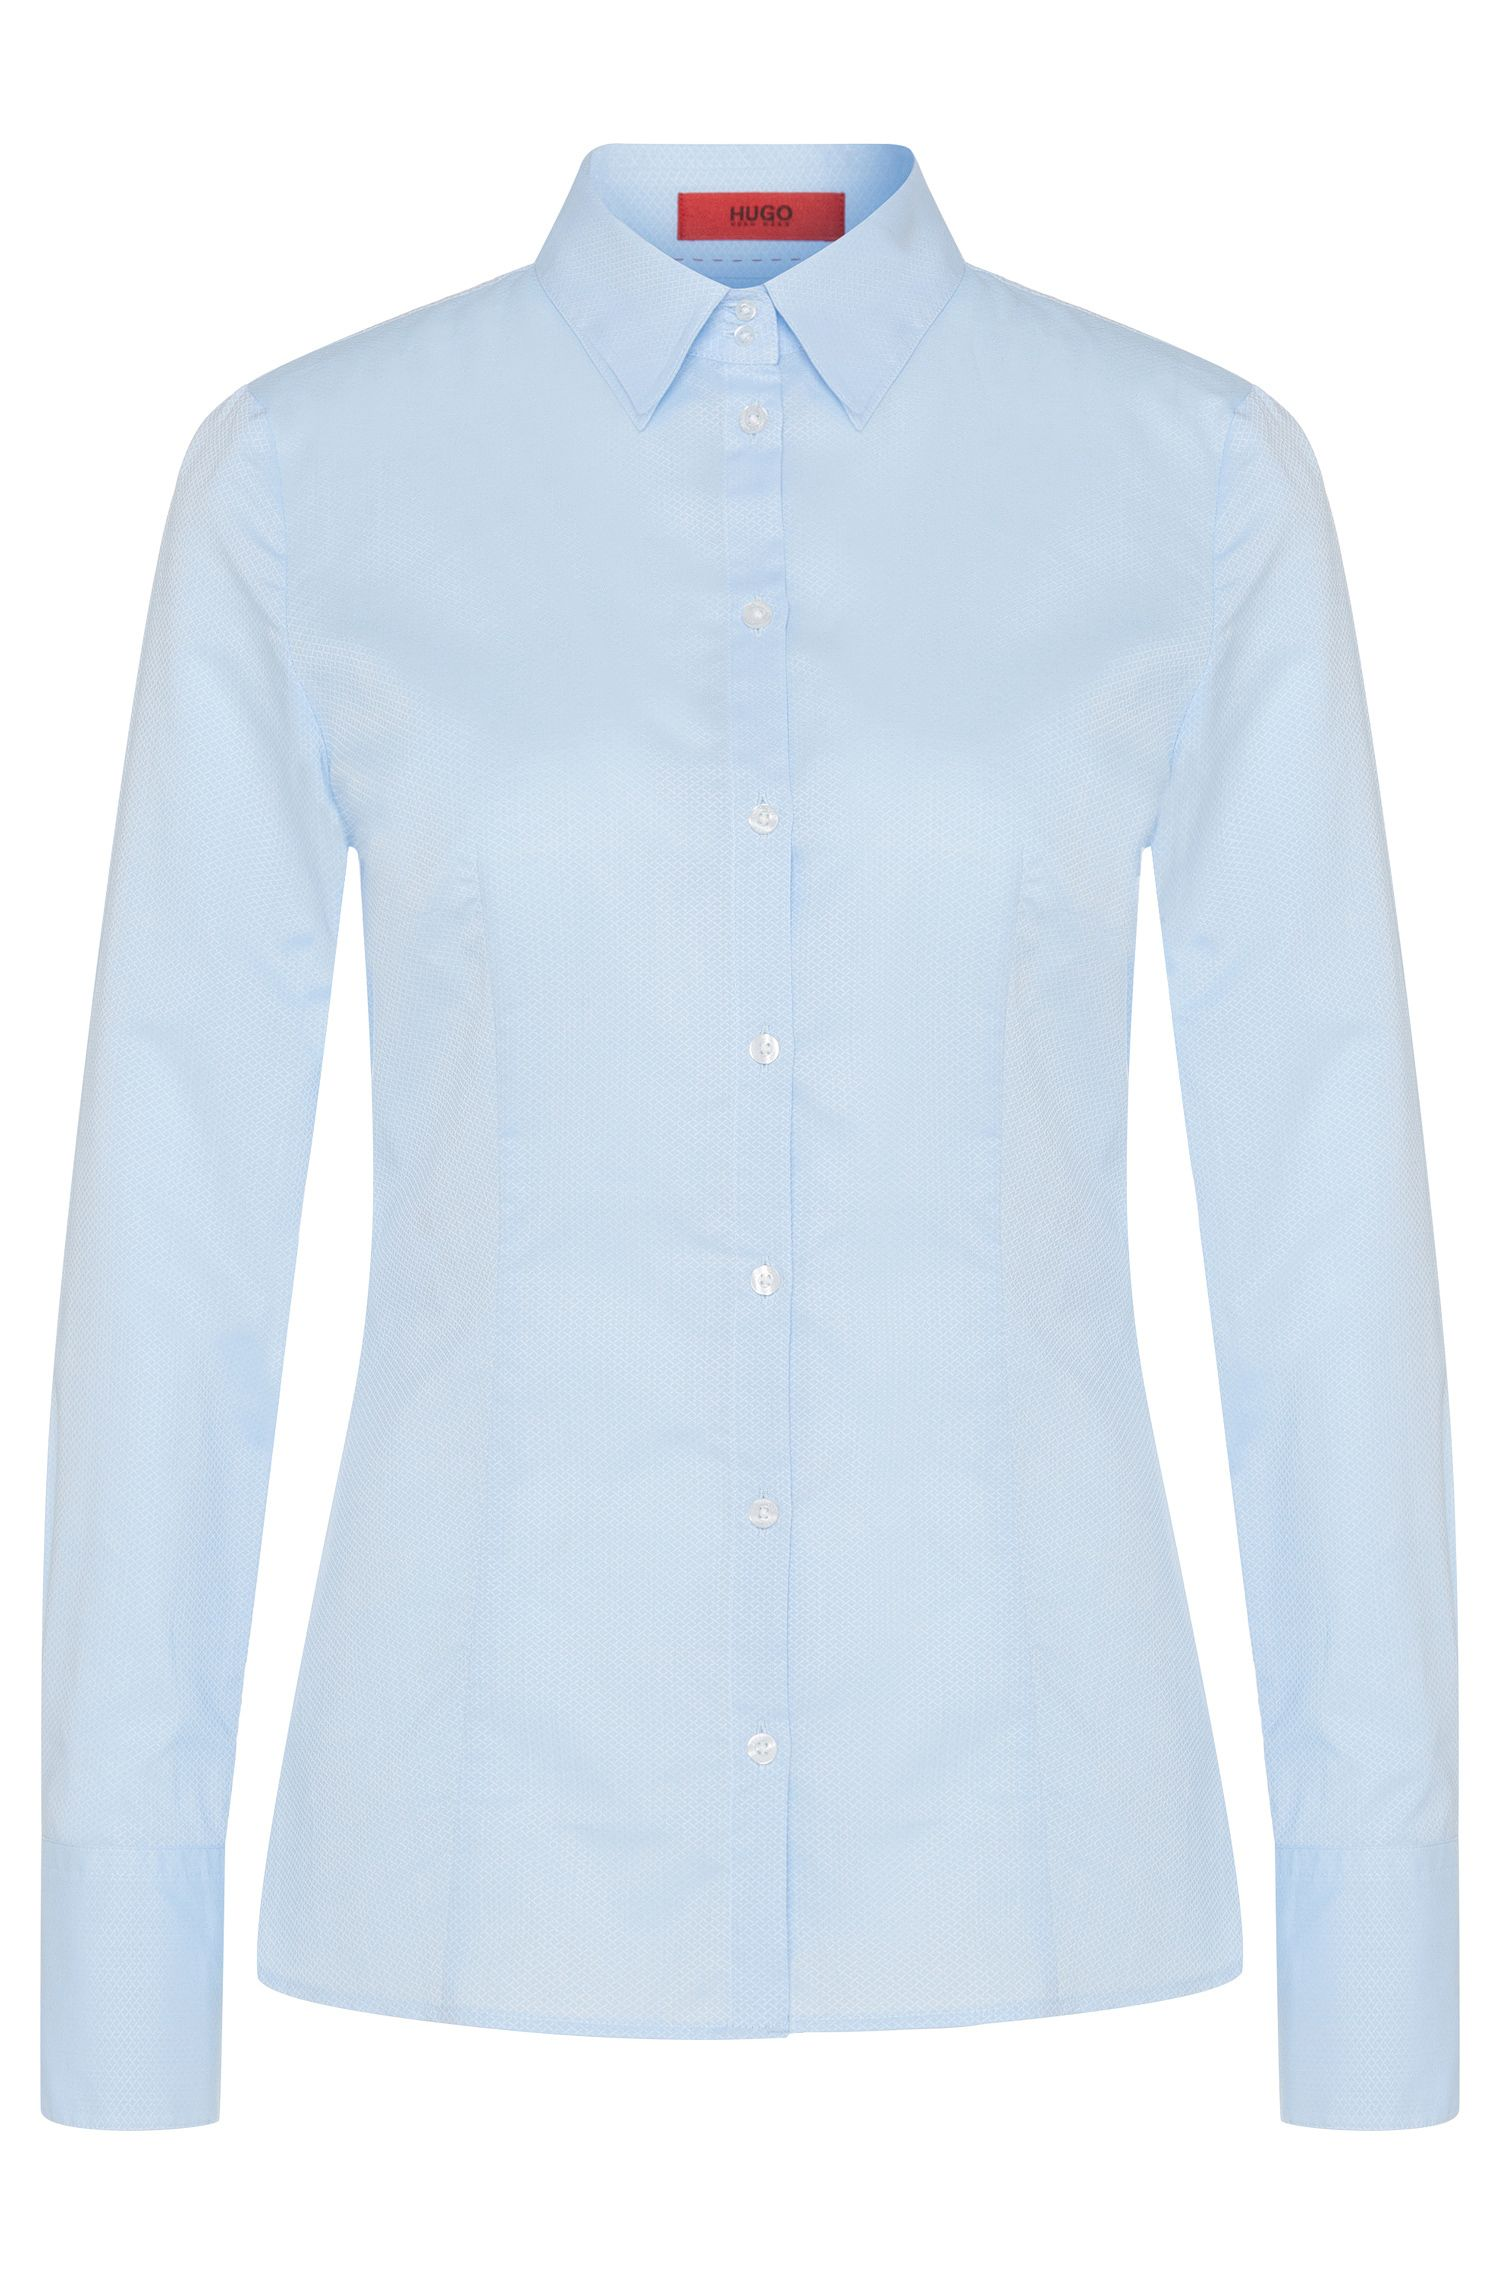 Shirt-style blouse in cotton with wide cuffs: 'Etrixe1'